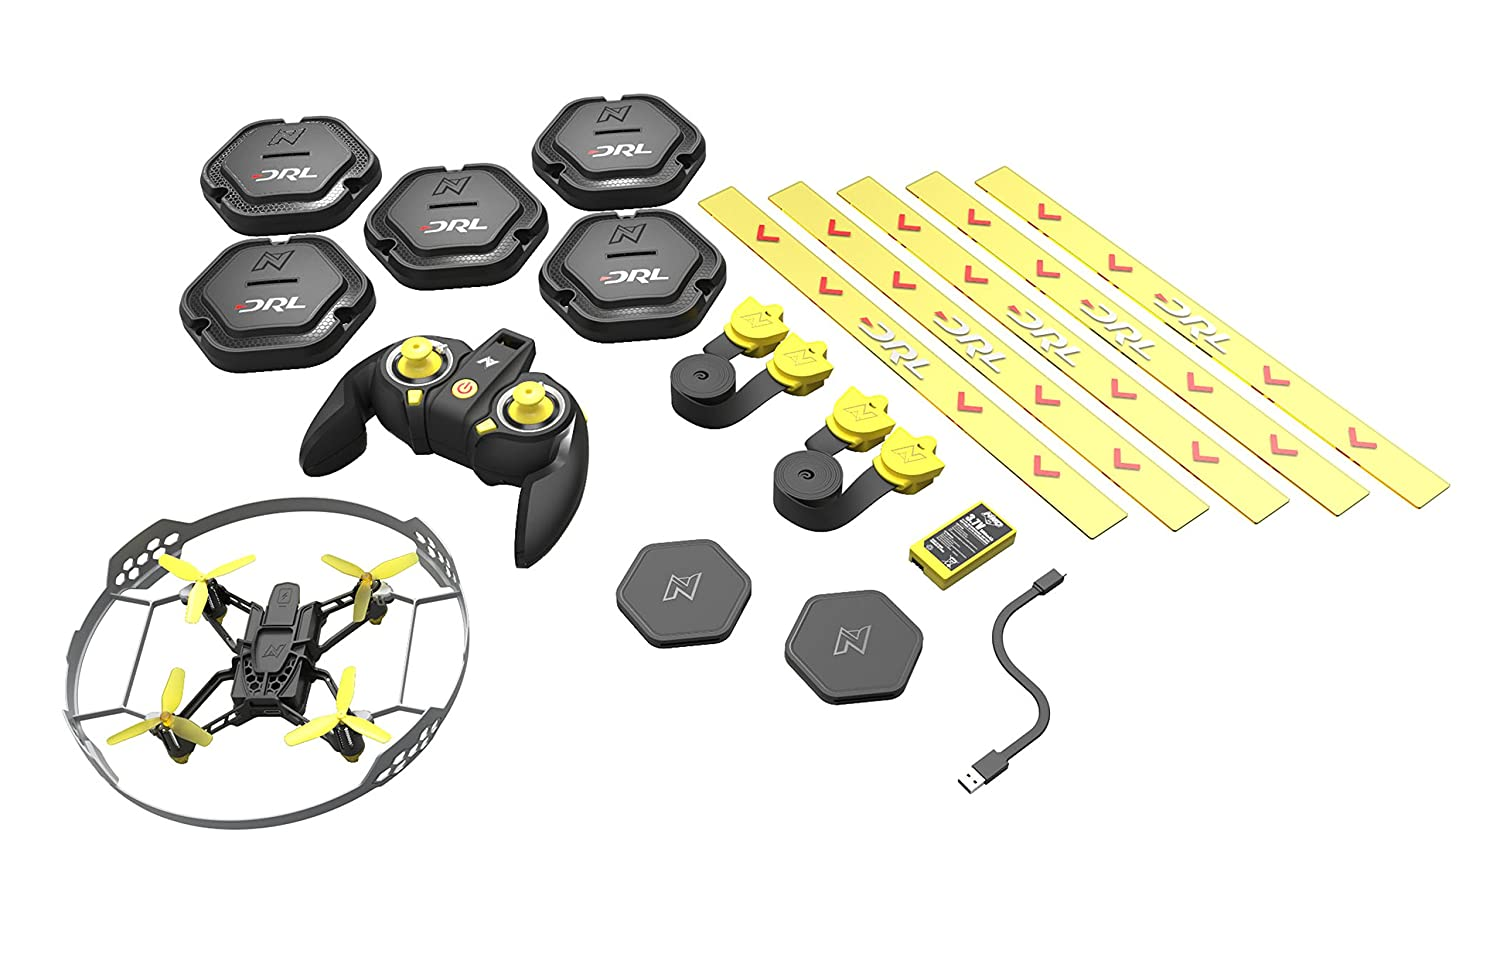 Toy State Air Elite 115 Drone Race Set MPA 22625